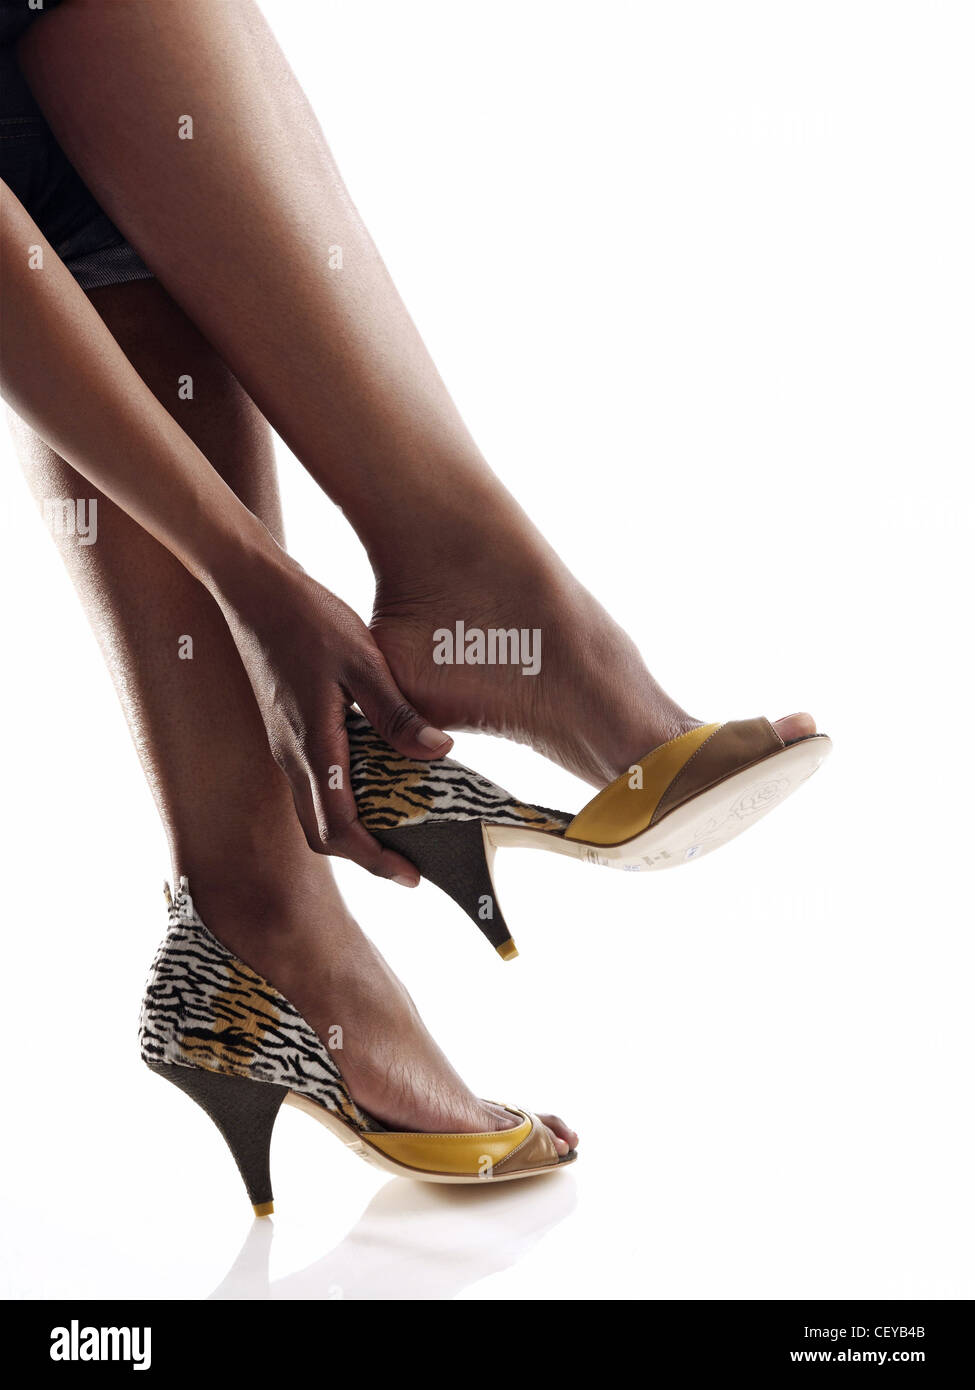 Female wearing yellow leopard print high heeled shoes taking shoe off - Stock Image